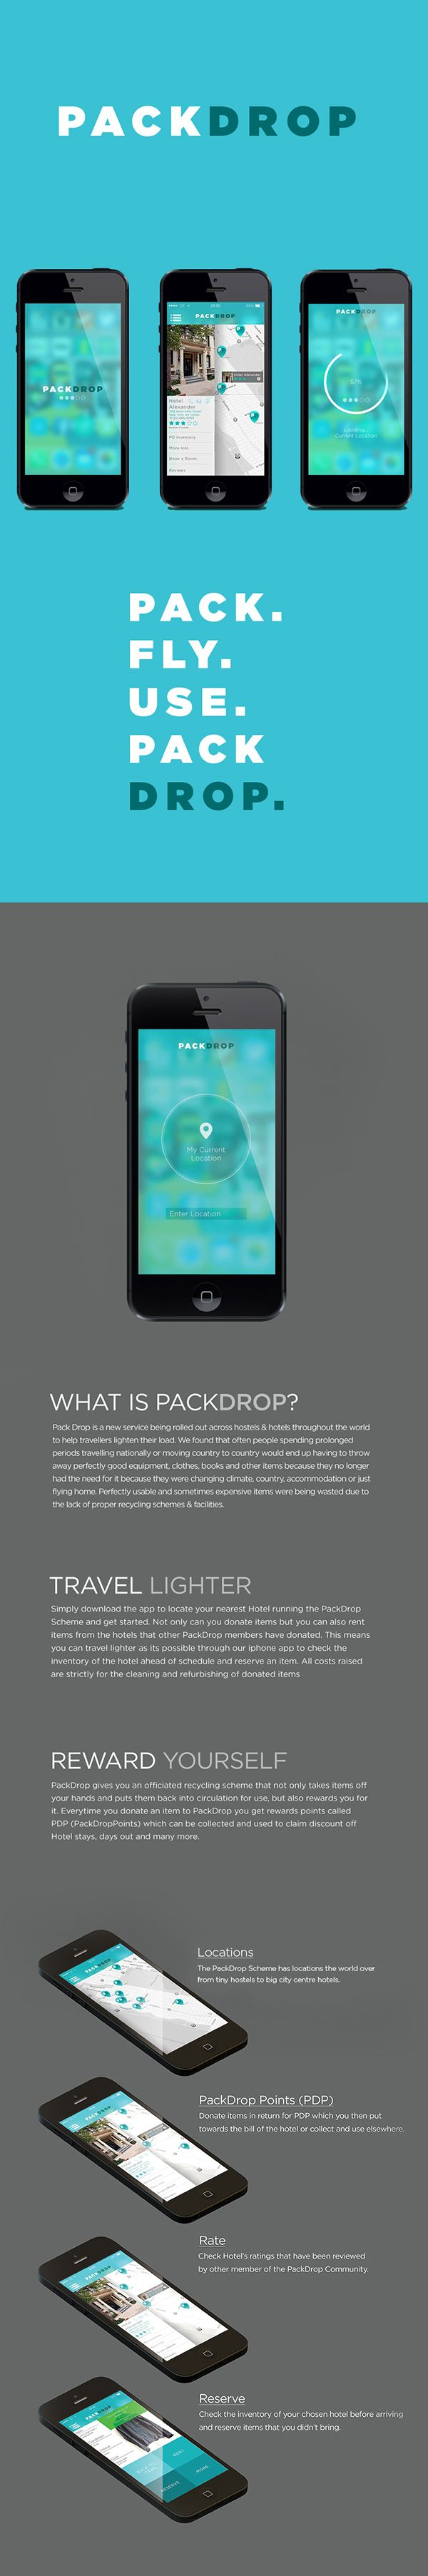 PackDrop is a new service being rolled out across Hostels and Hotels throughout the world to help travellers lighten their load. We found that often people spending prolonged periods travelling nationally or moving country to country would end up throwing…